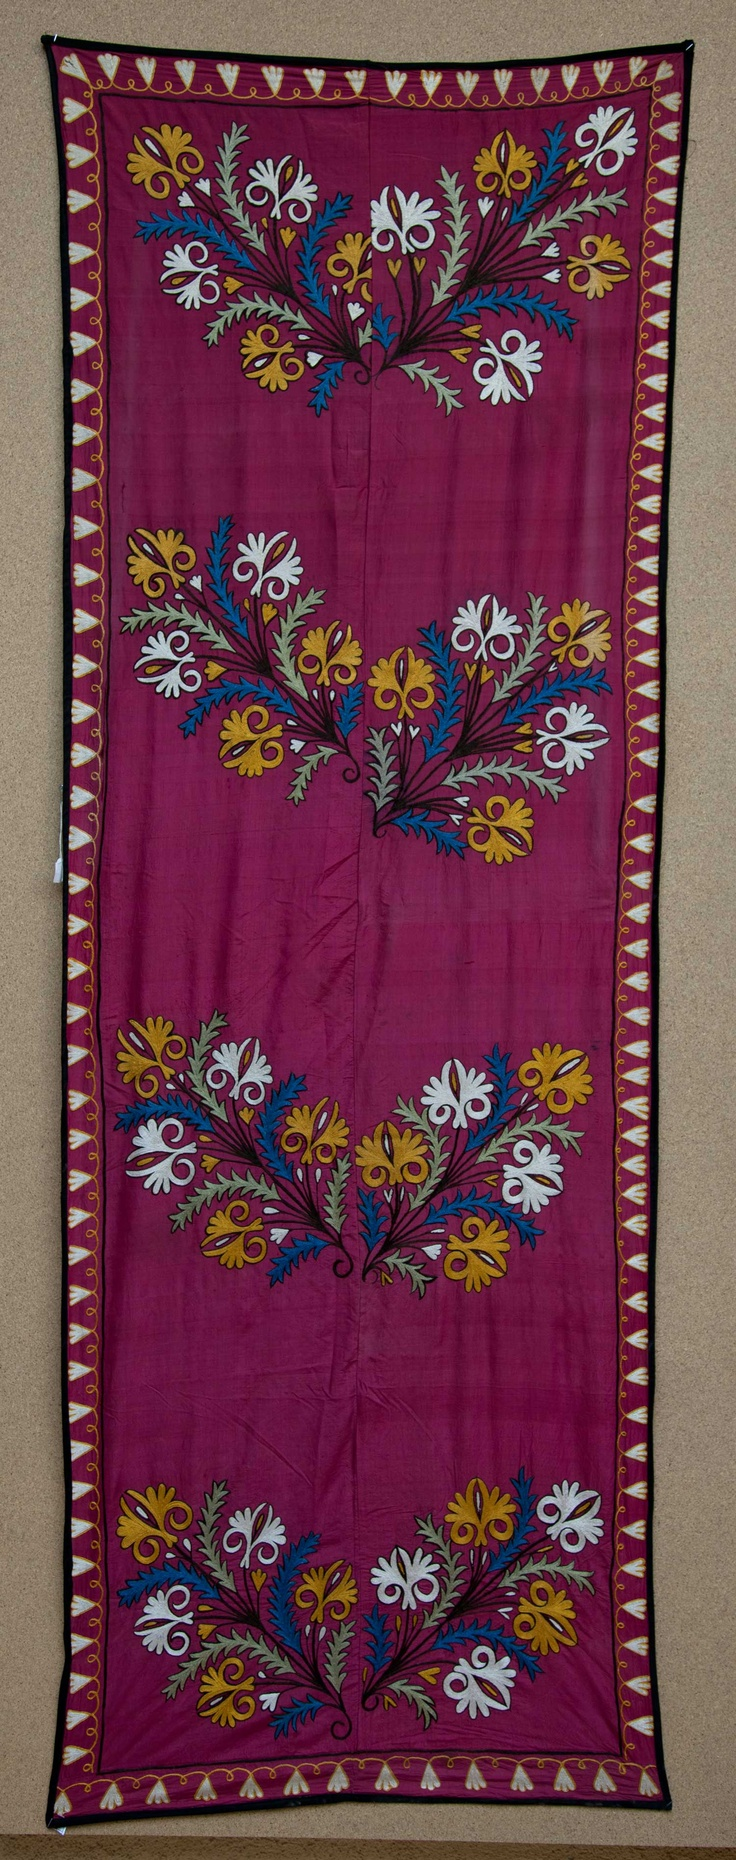 antique Uzbek Suzani Fragment, silk embroidery.